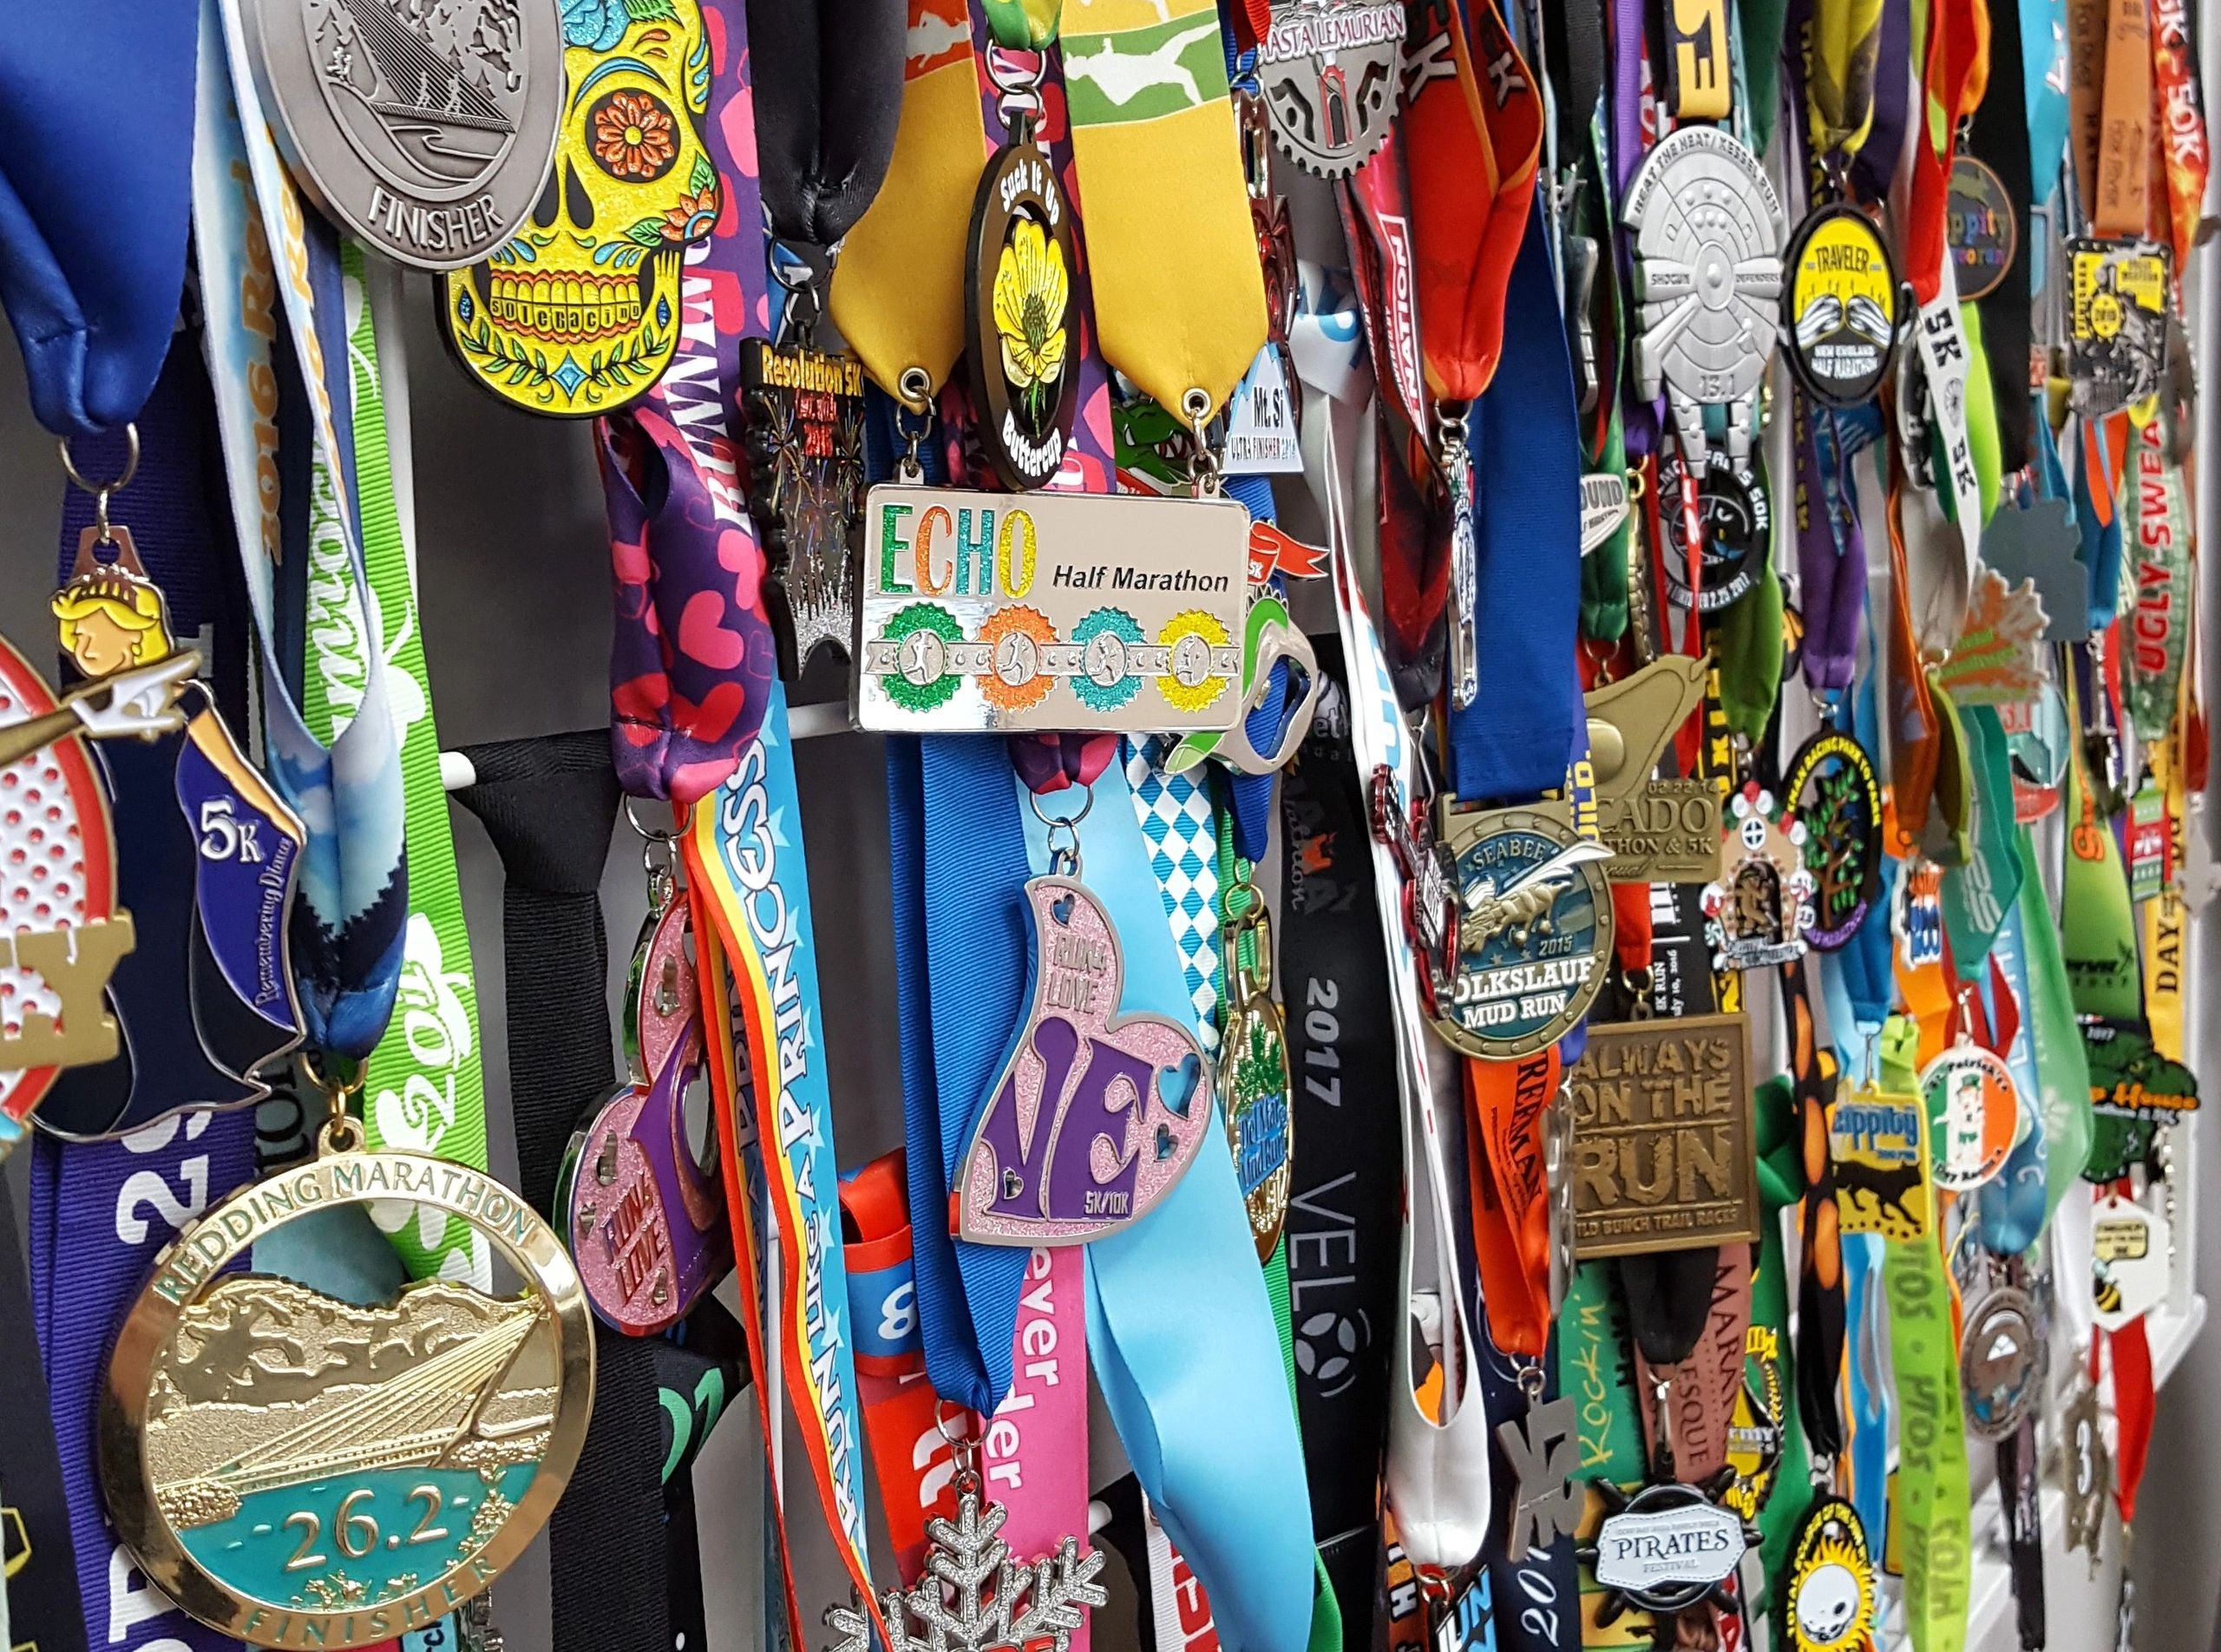 Wall of hanging colorful race medals and custom race ribbons from many running event brands.